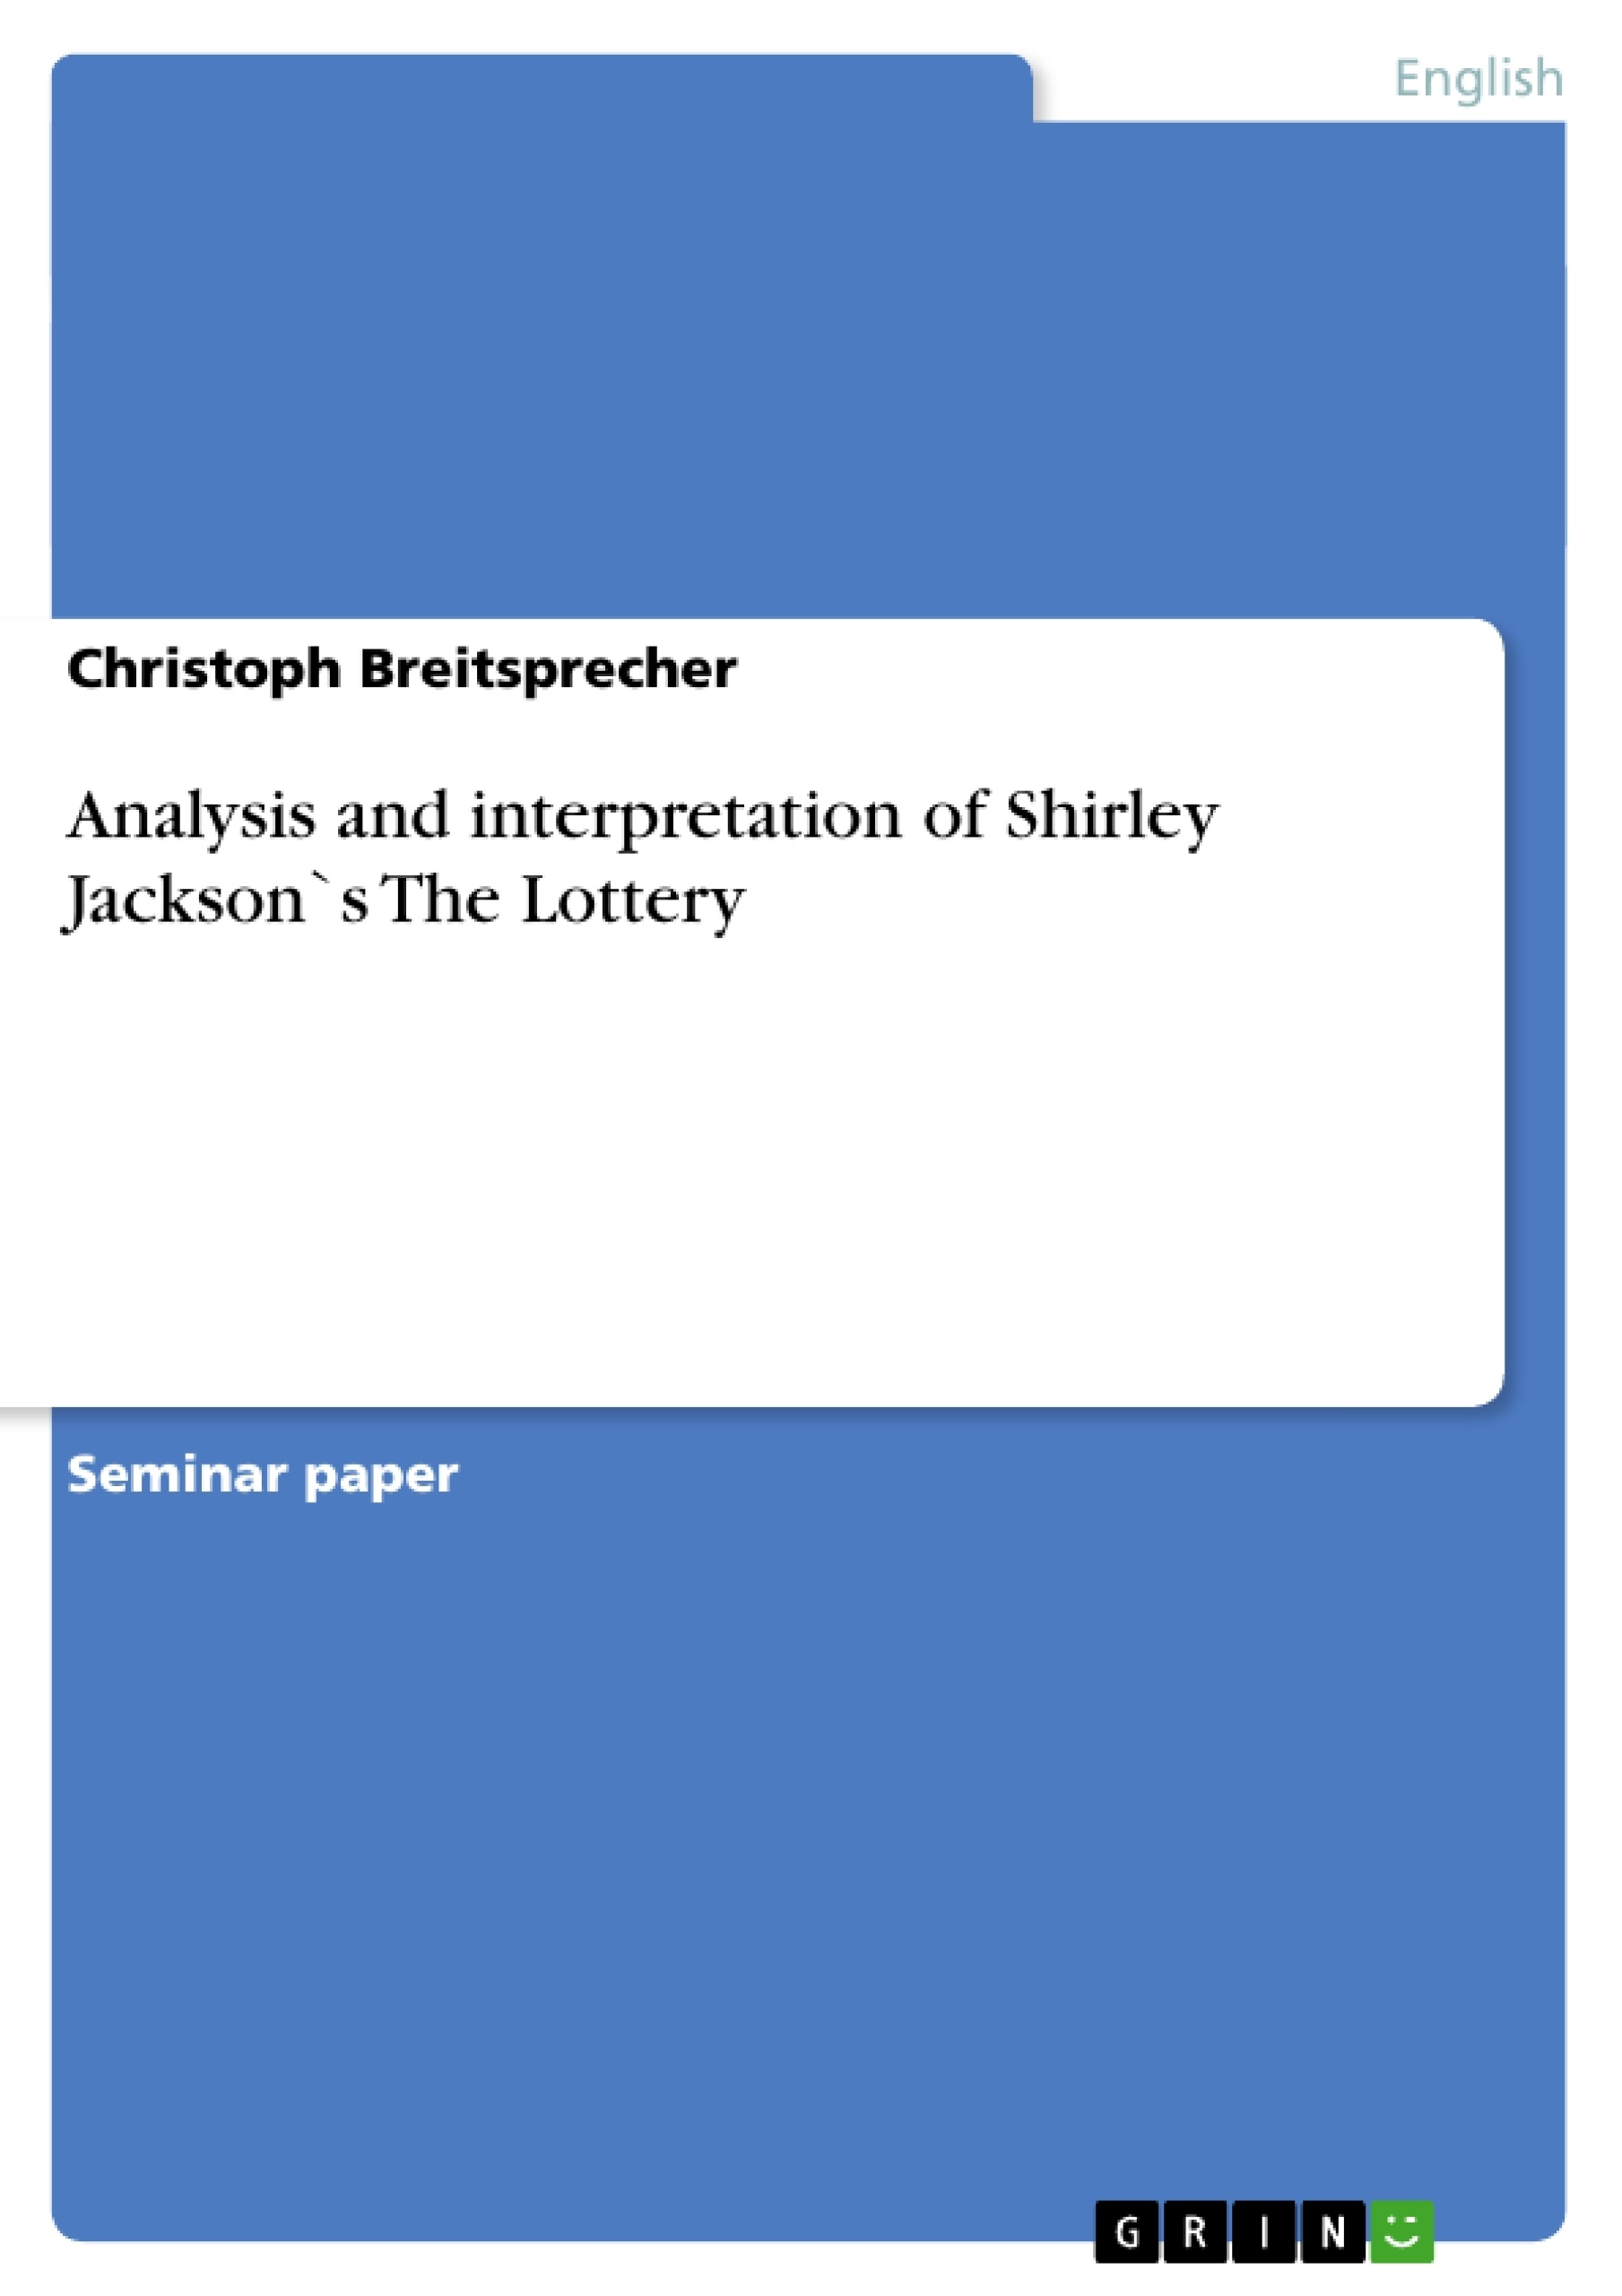 Analysis And Interpretation Of Shirley Jackson`s The Lottery   Analysis And Interpretation Of Shirley Jackson S The Lottery